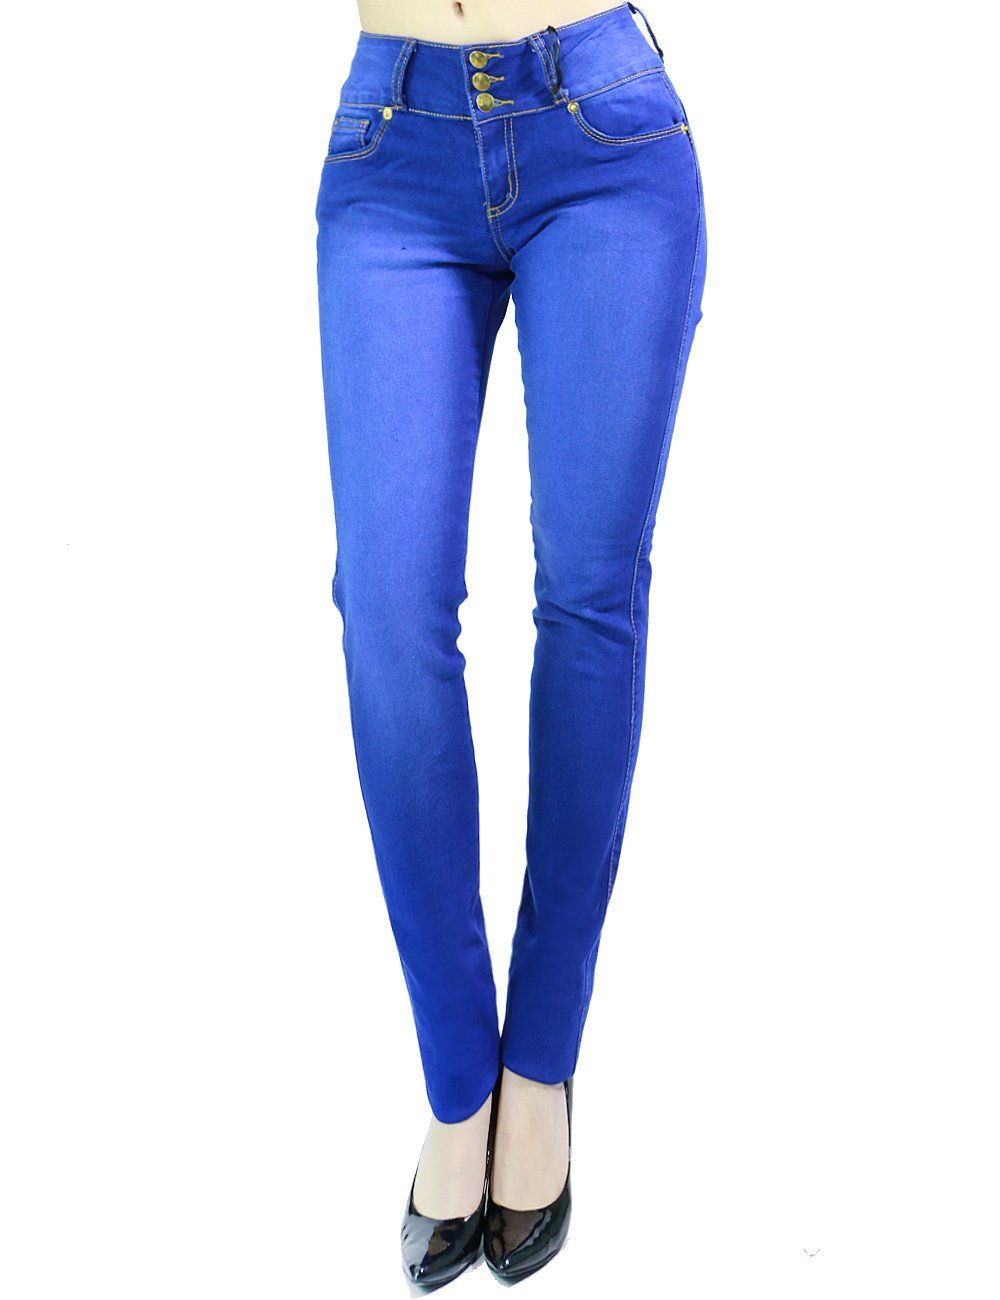 Womens Fashion Faded Ocean Blue Stretch Skinny Jeans 3 Button Closure (SIZE : 3, BLUE)